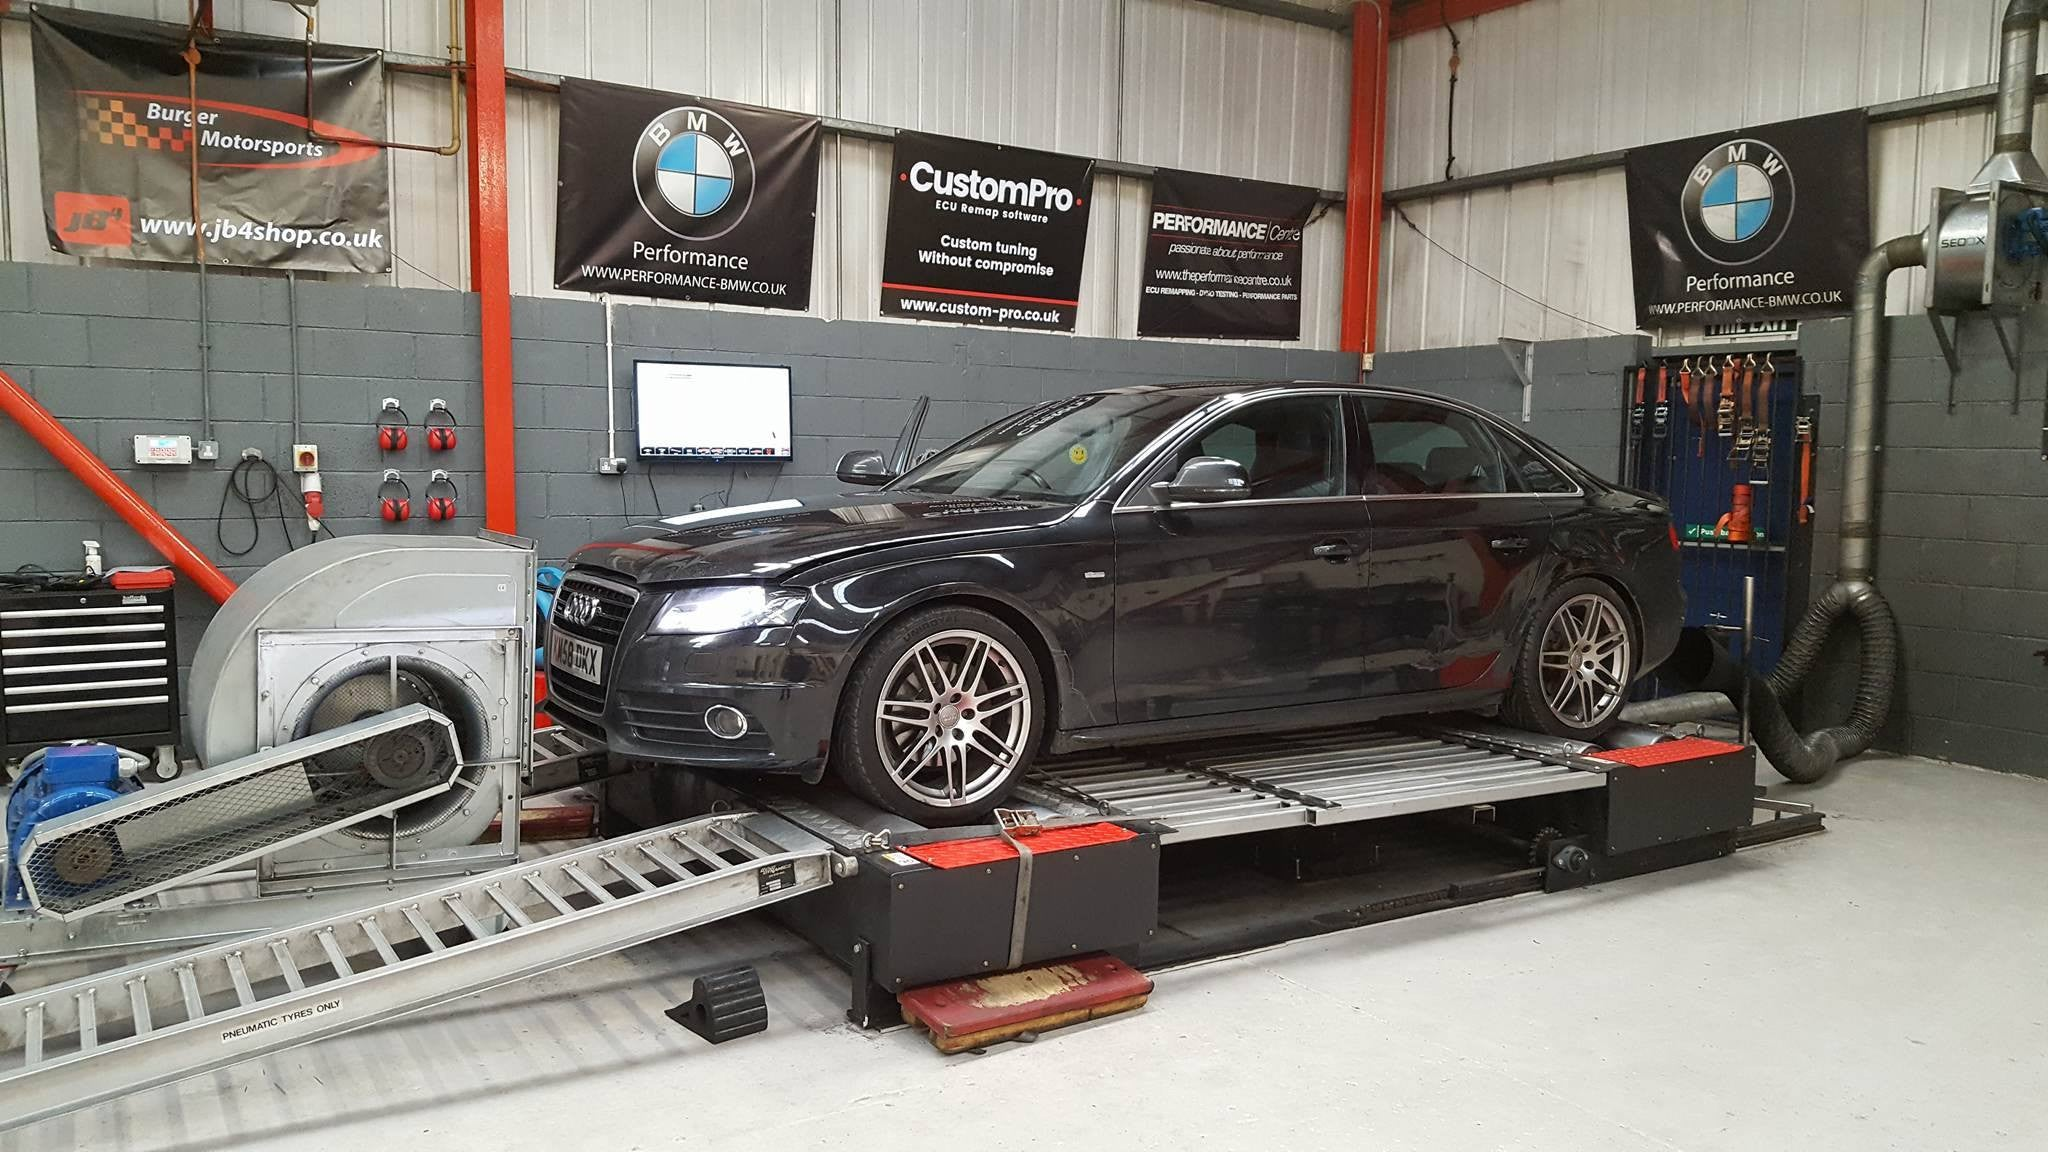 Audi A4 B8 3.0 240 - CustomPro remap software